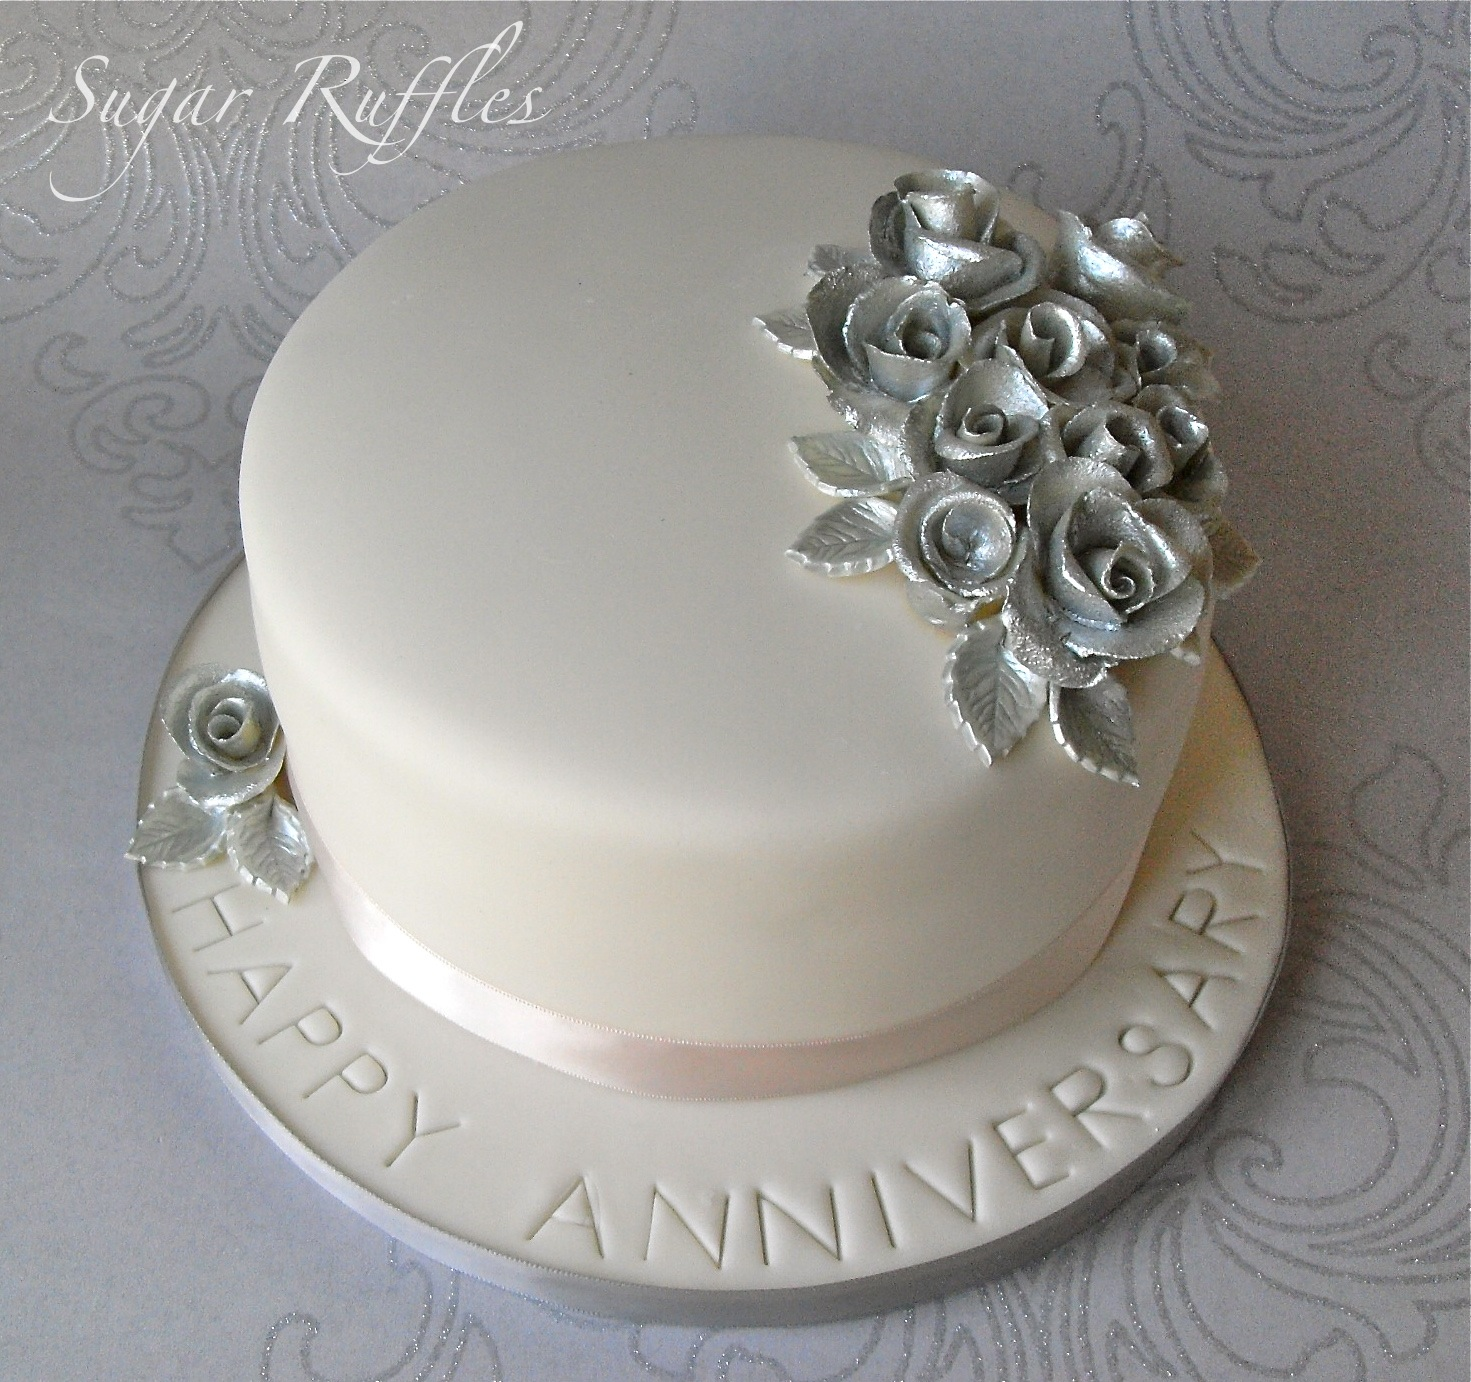 Cake Pics For Marriage Anniversary : Wedding Anniversary Cakes - Tyler Living